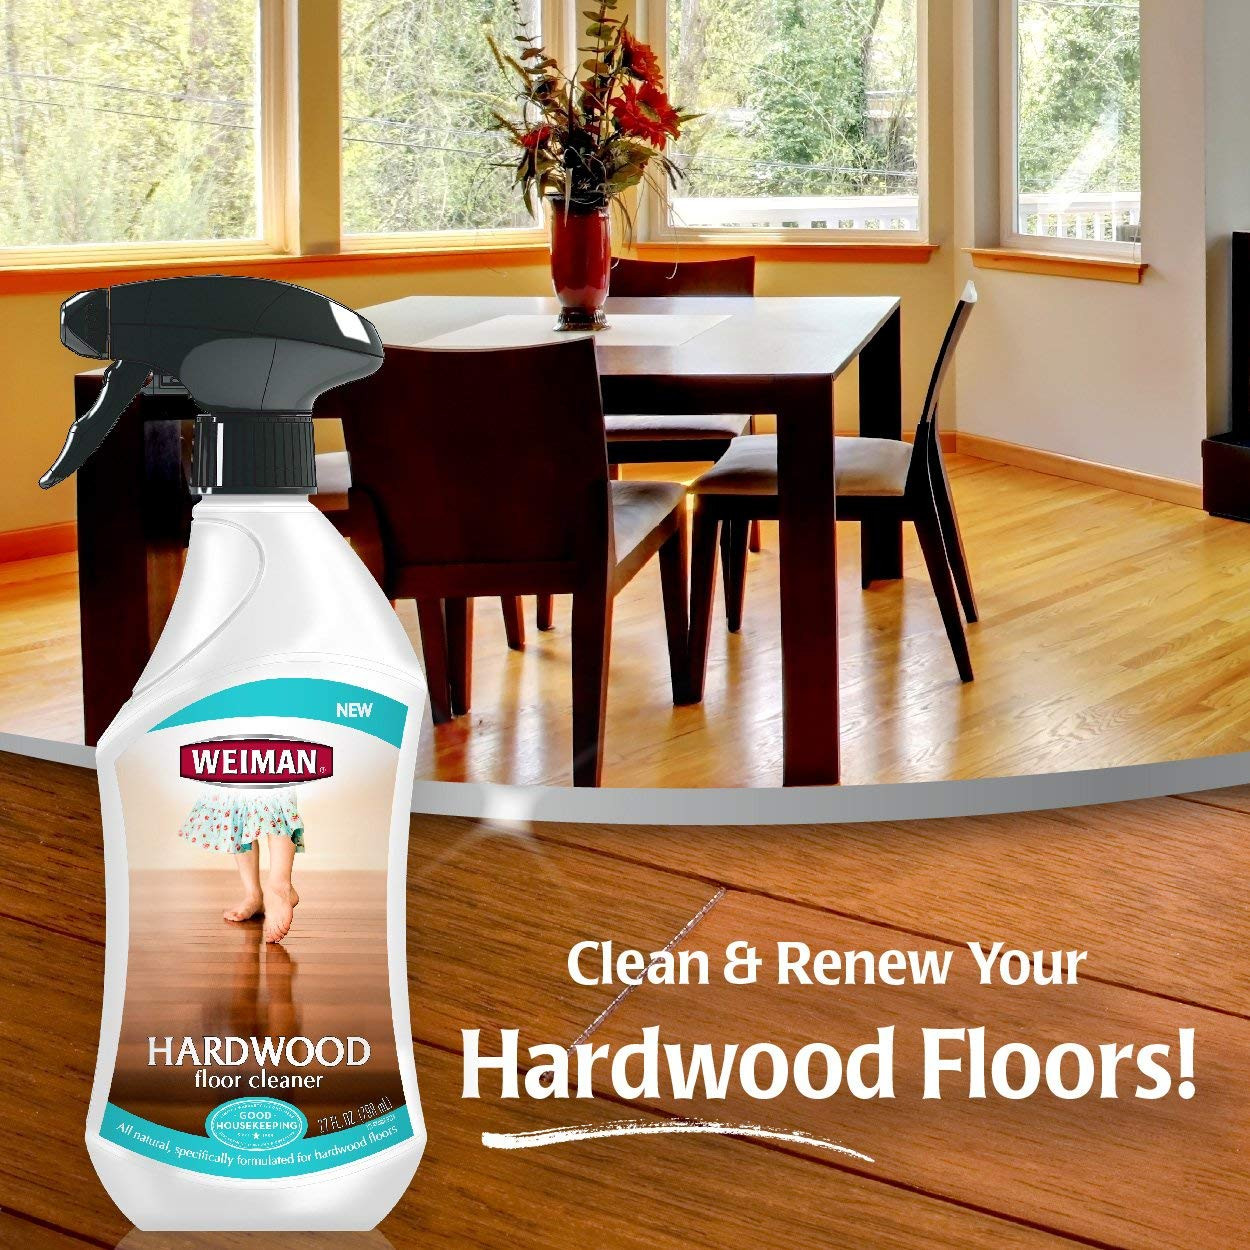 11 Great Cleaning Products for Engineered Hardwood Floors 2021 free download cleaning products for engineered hardwood floors of amazon com weiman hardwood floor cleaner surface safe no harsh intended for amazon com weiman hardwood floor cleaner surface safe no harsh